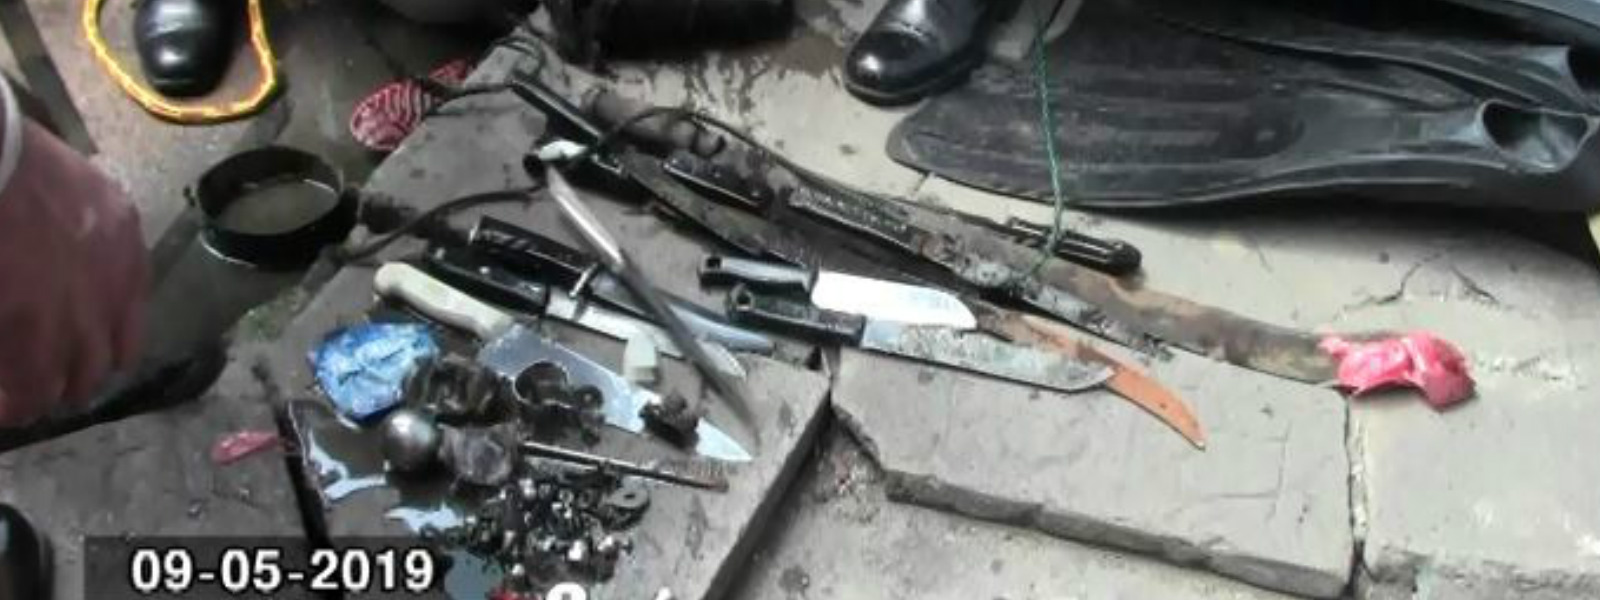 Weapons discovered in wells around Maligawatte